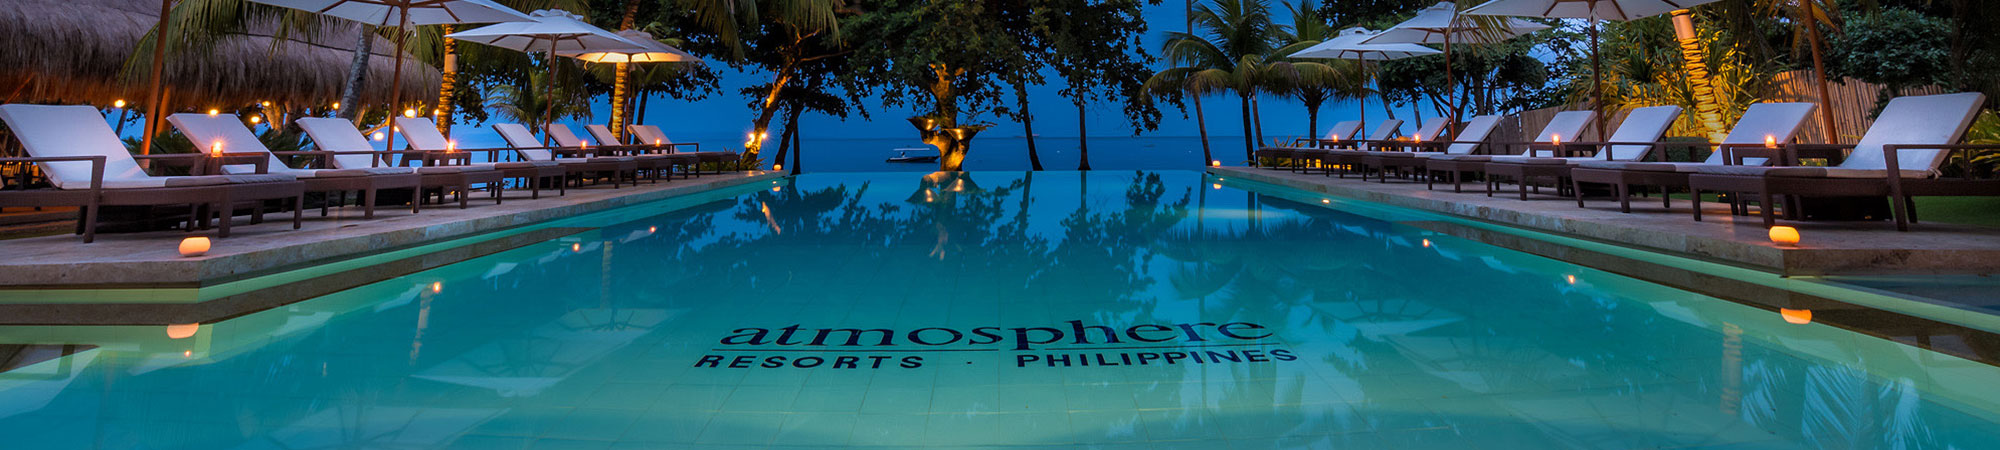 Atmosphere. The infinity pool at Atmosphere Resorts & Spa overlooks the Philippine sea near Dumaguete in Negros Oriental